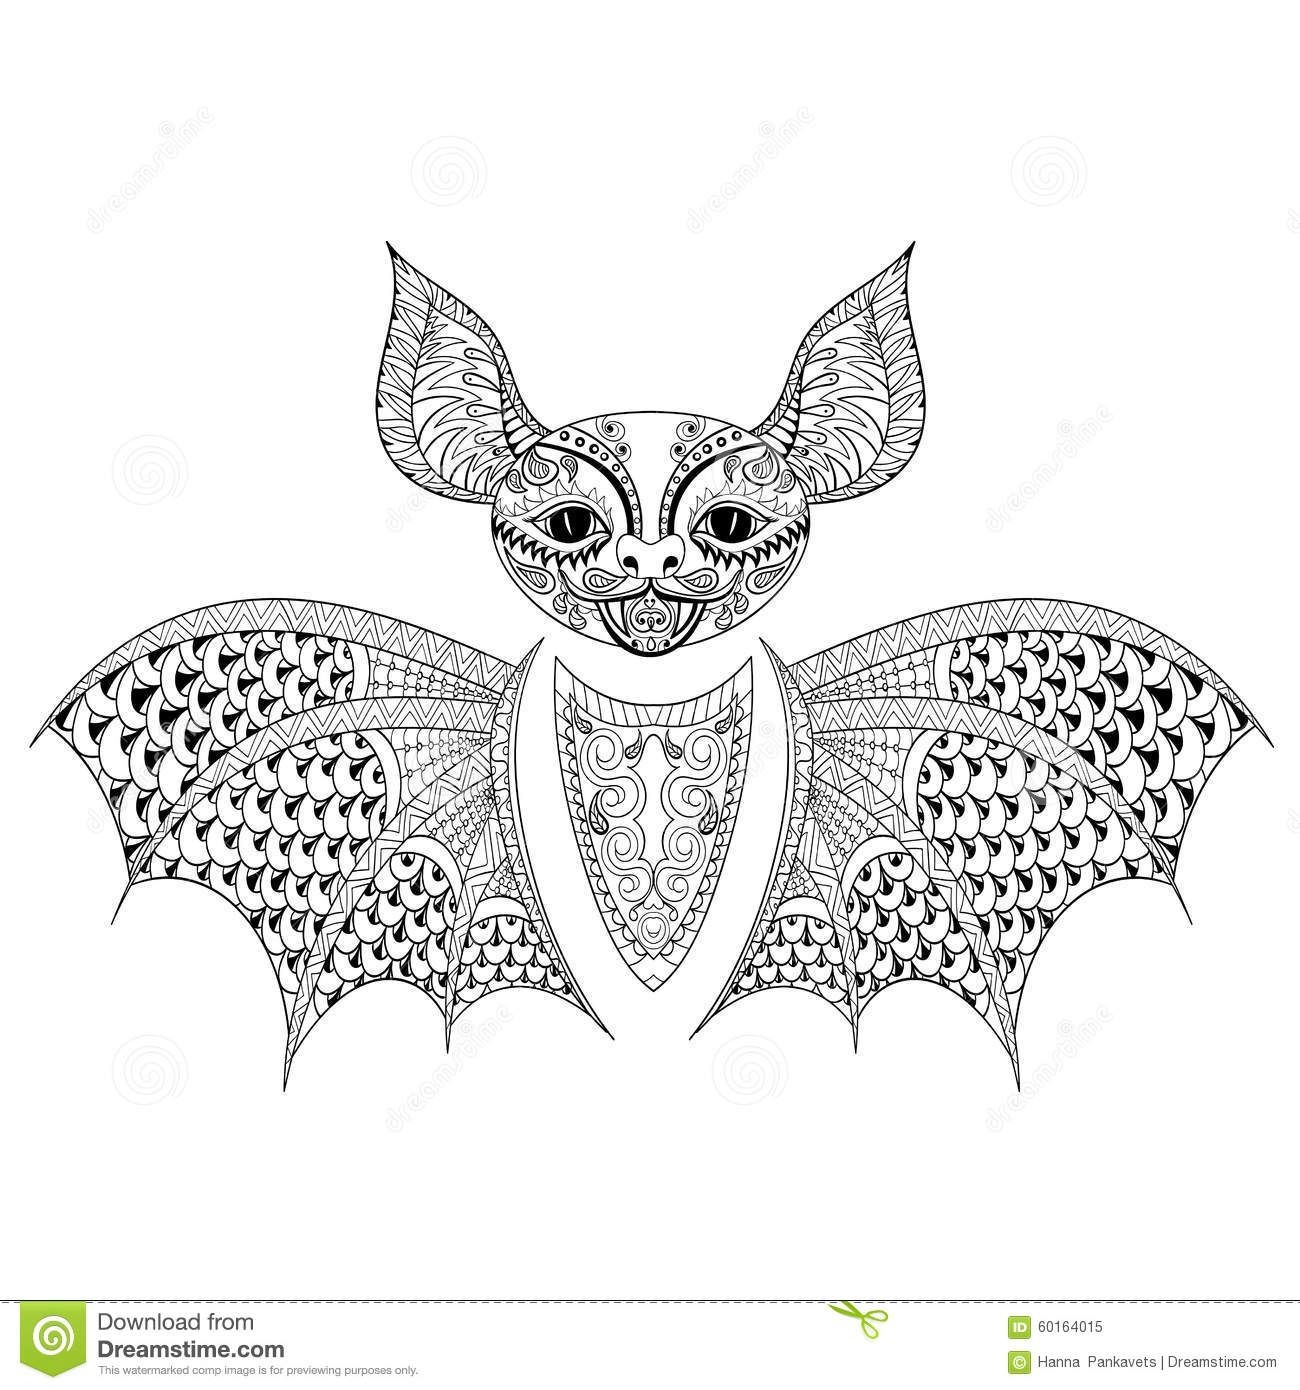 zentangle-bat-totem-adult-anti-stress-coloring-page-art-therapy ...